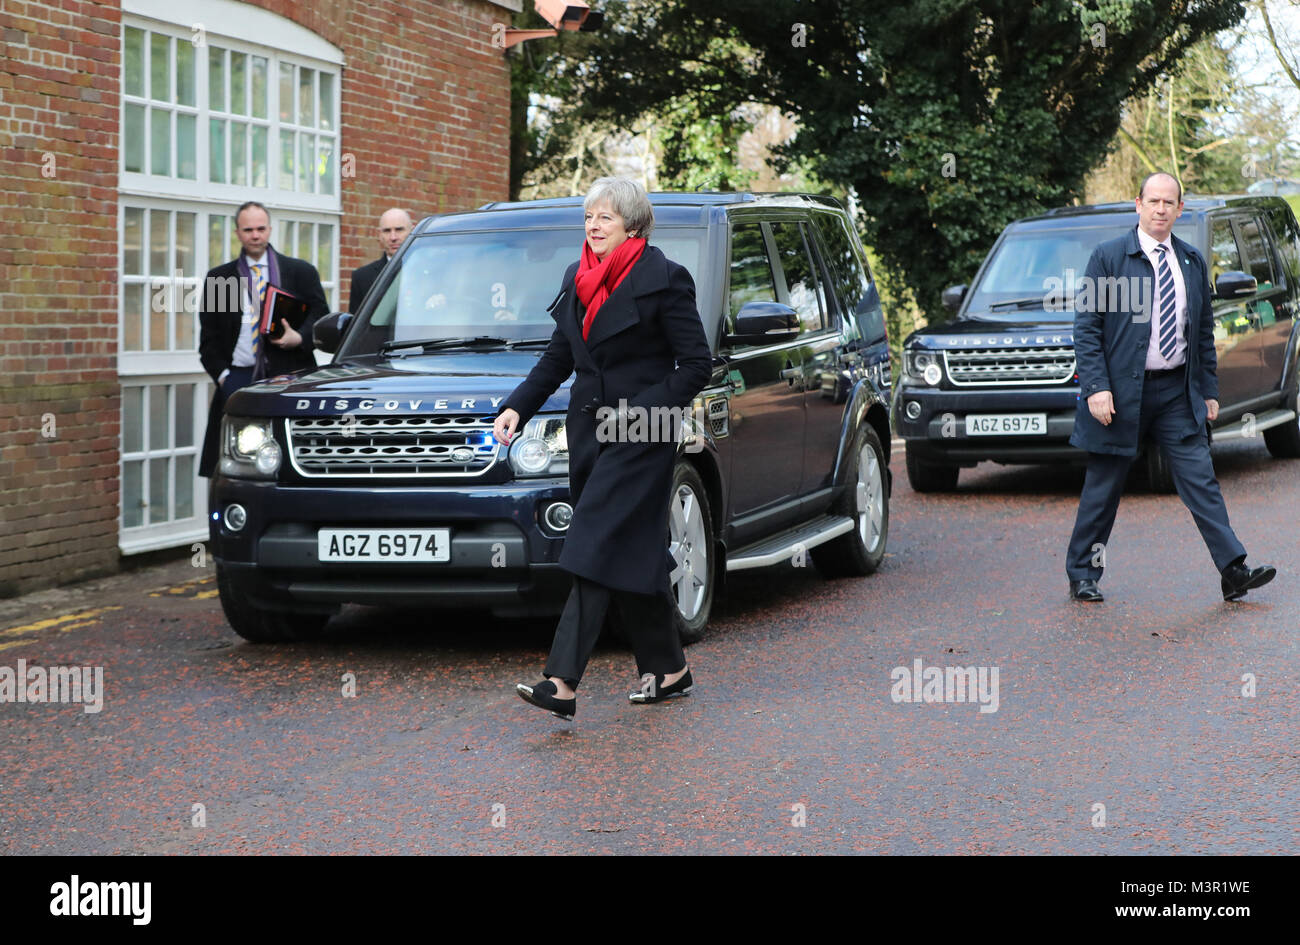 Prime Minister Theresa May arrives at Stormont House in Belfast ahead of talks aimed at ending the 13-month political - Stock Image